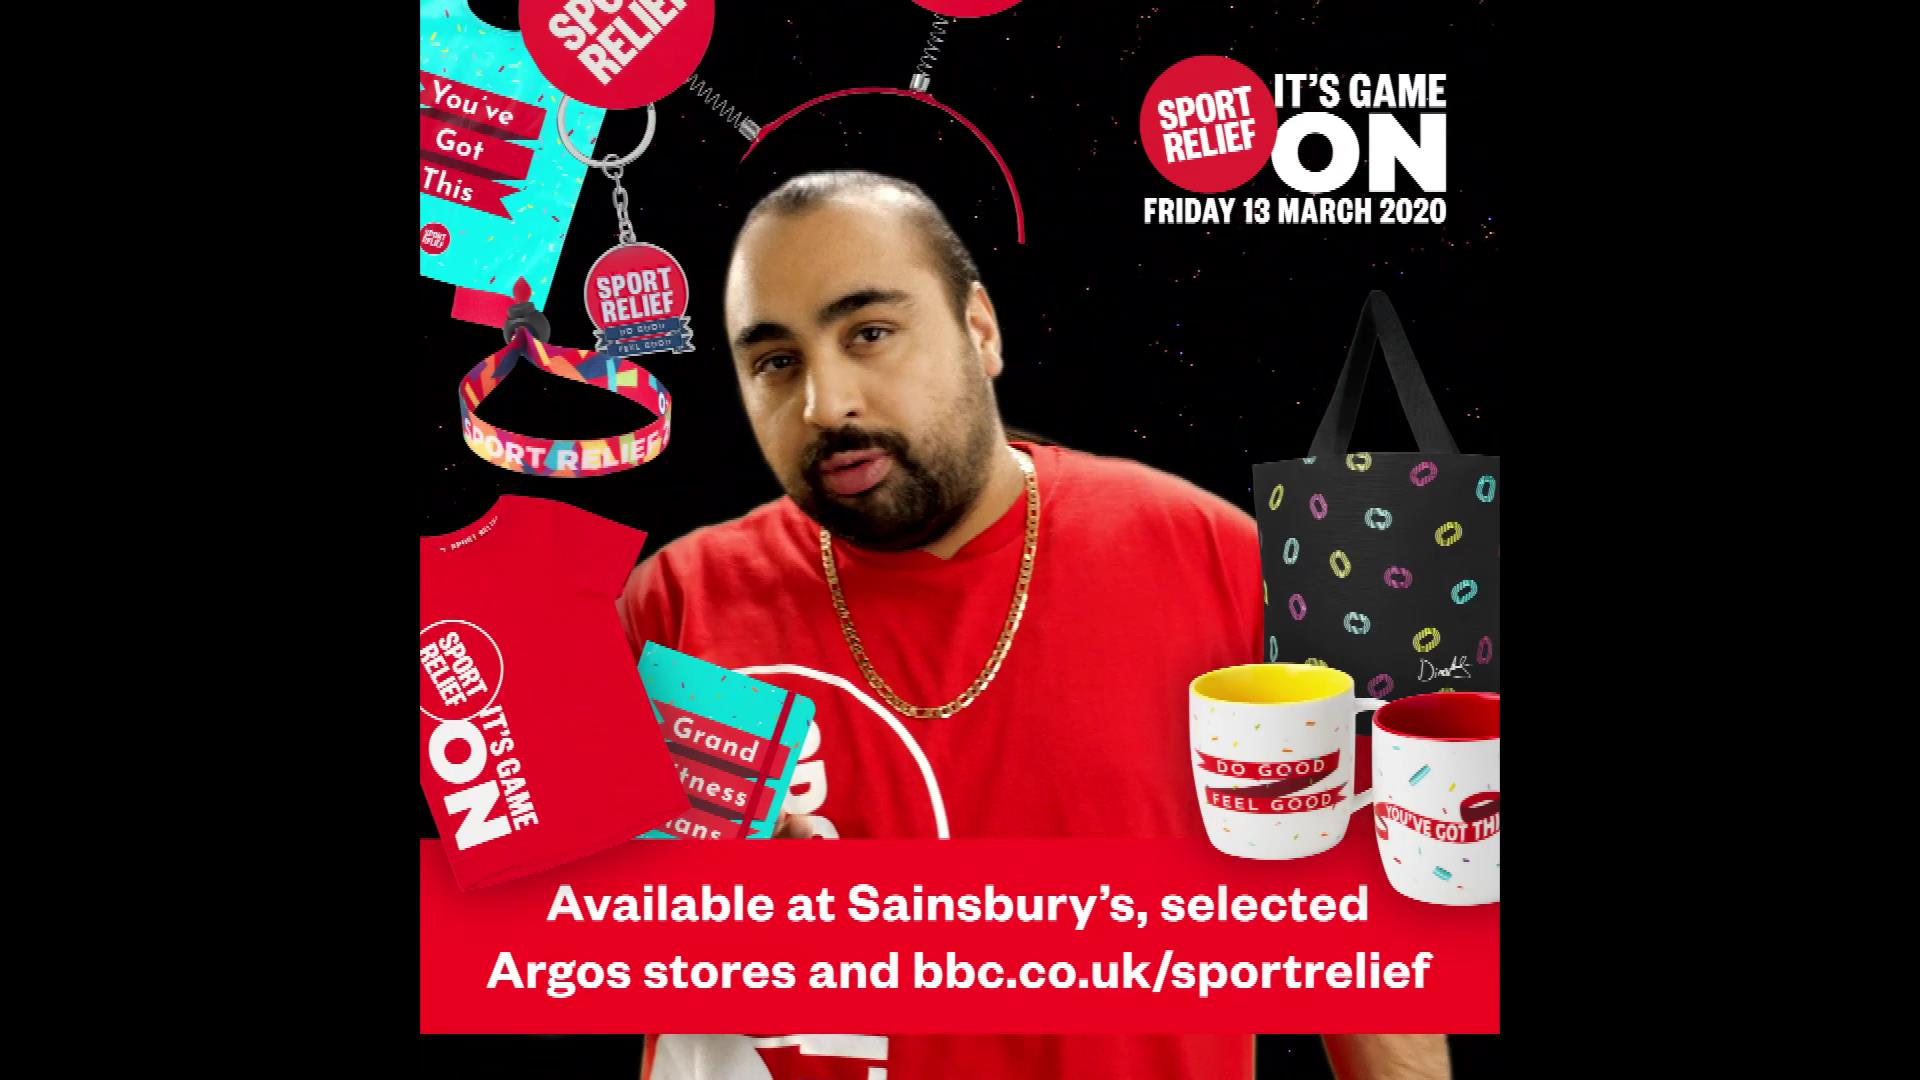 BBC Sport Relief Merch